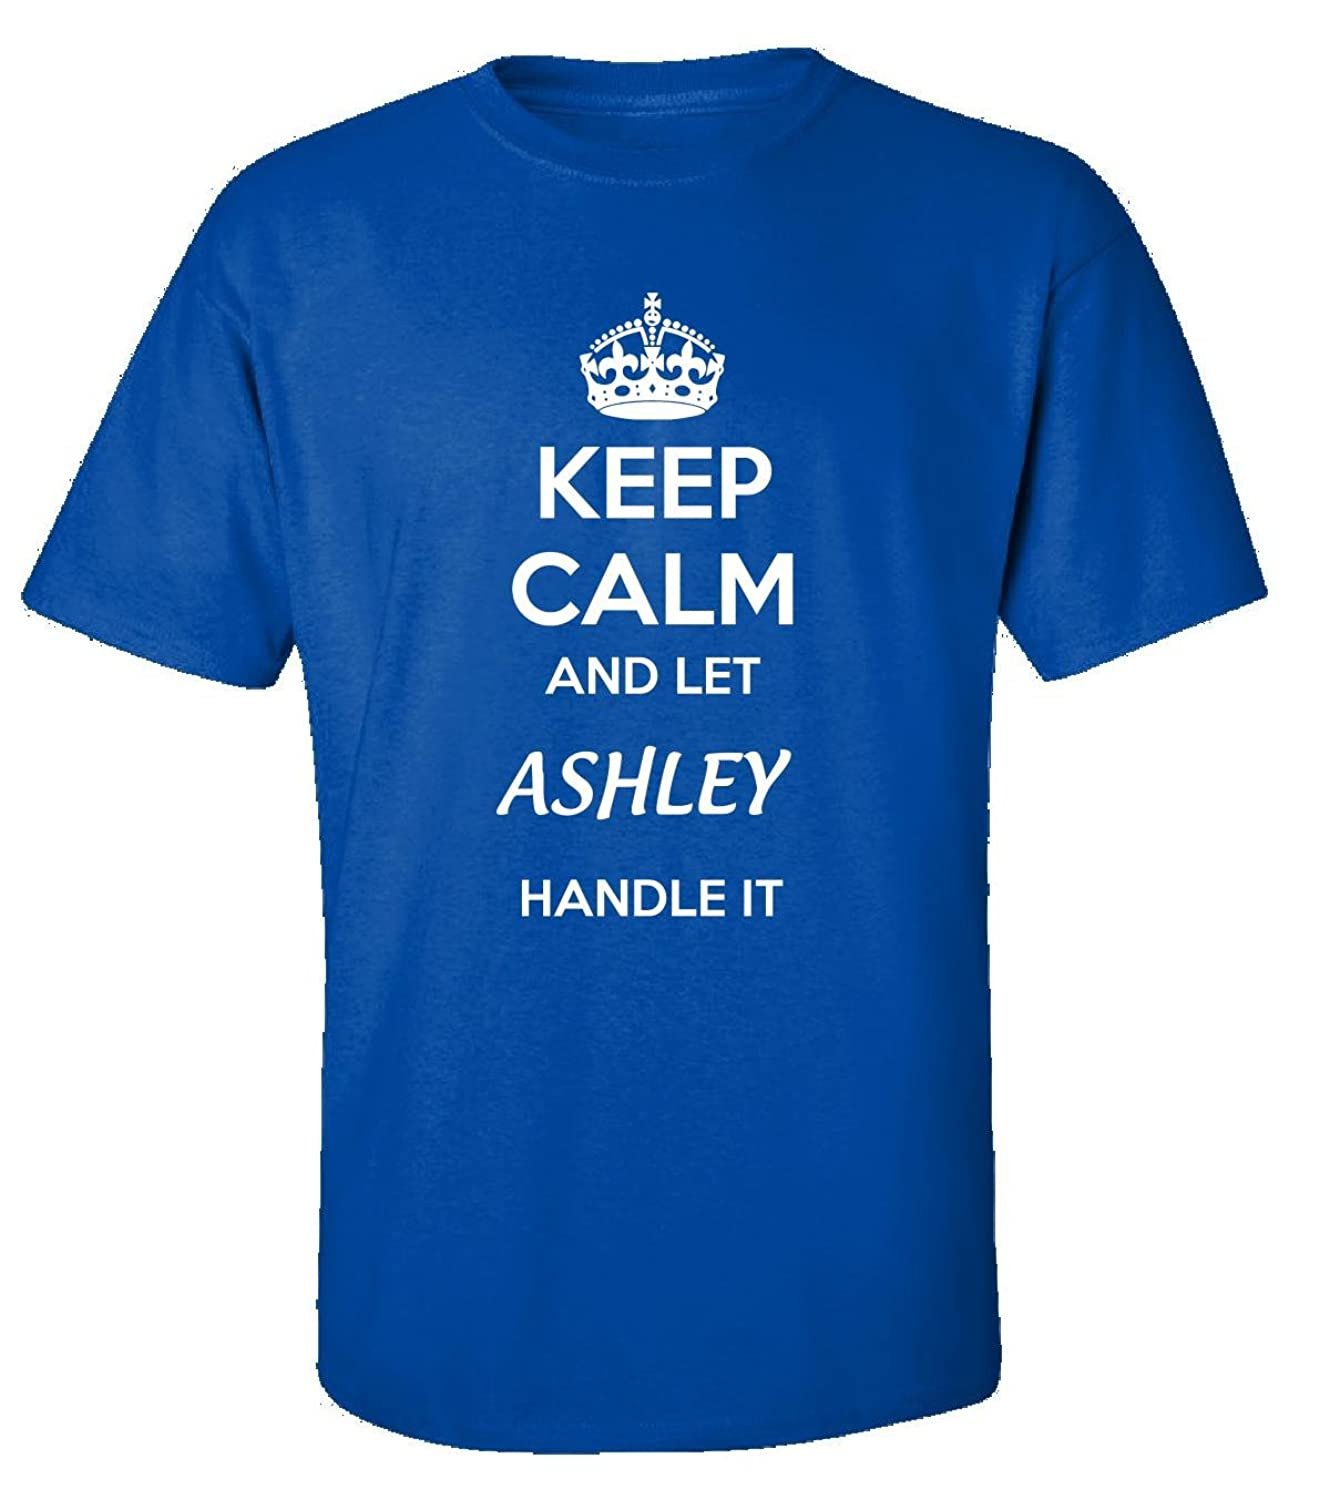 Keep Calm And Let Ashley Handle It - Adult Shirt